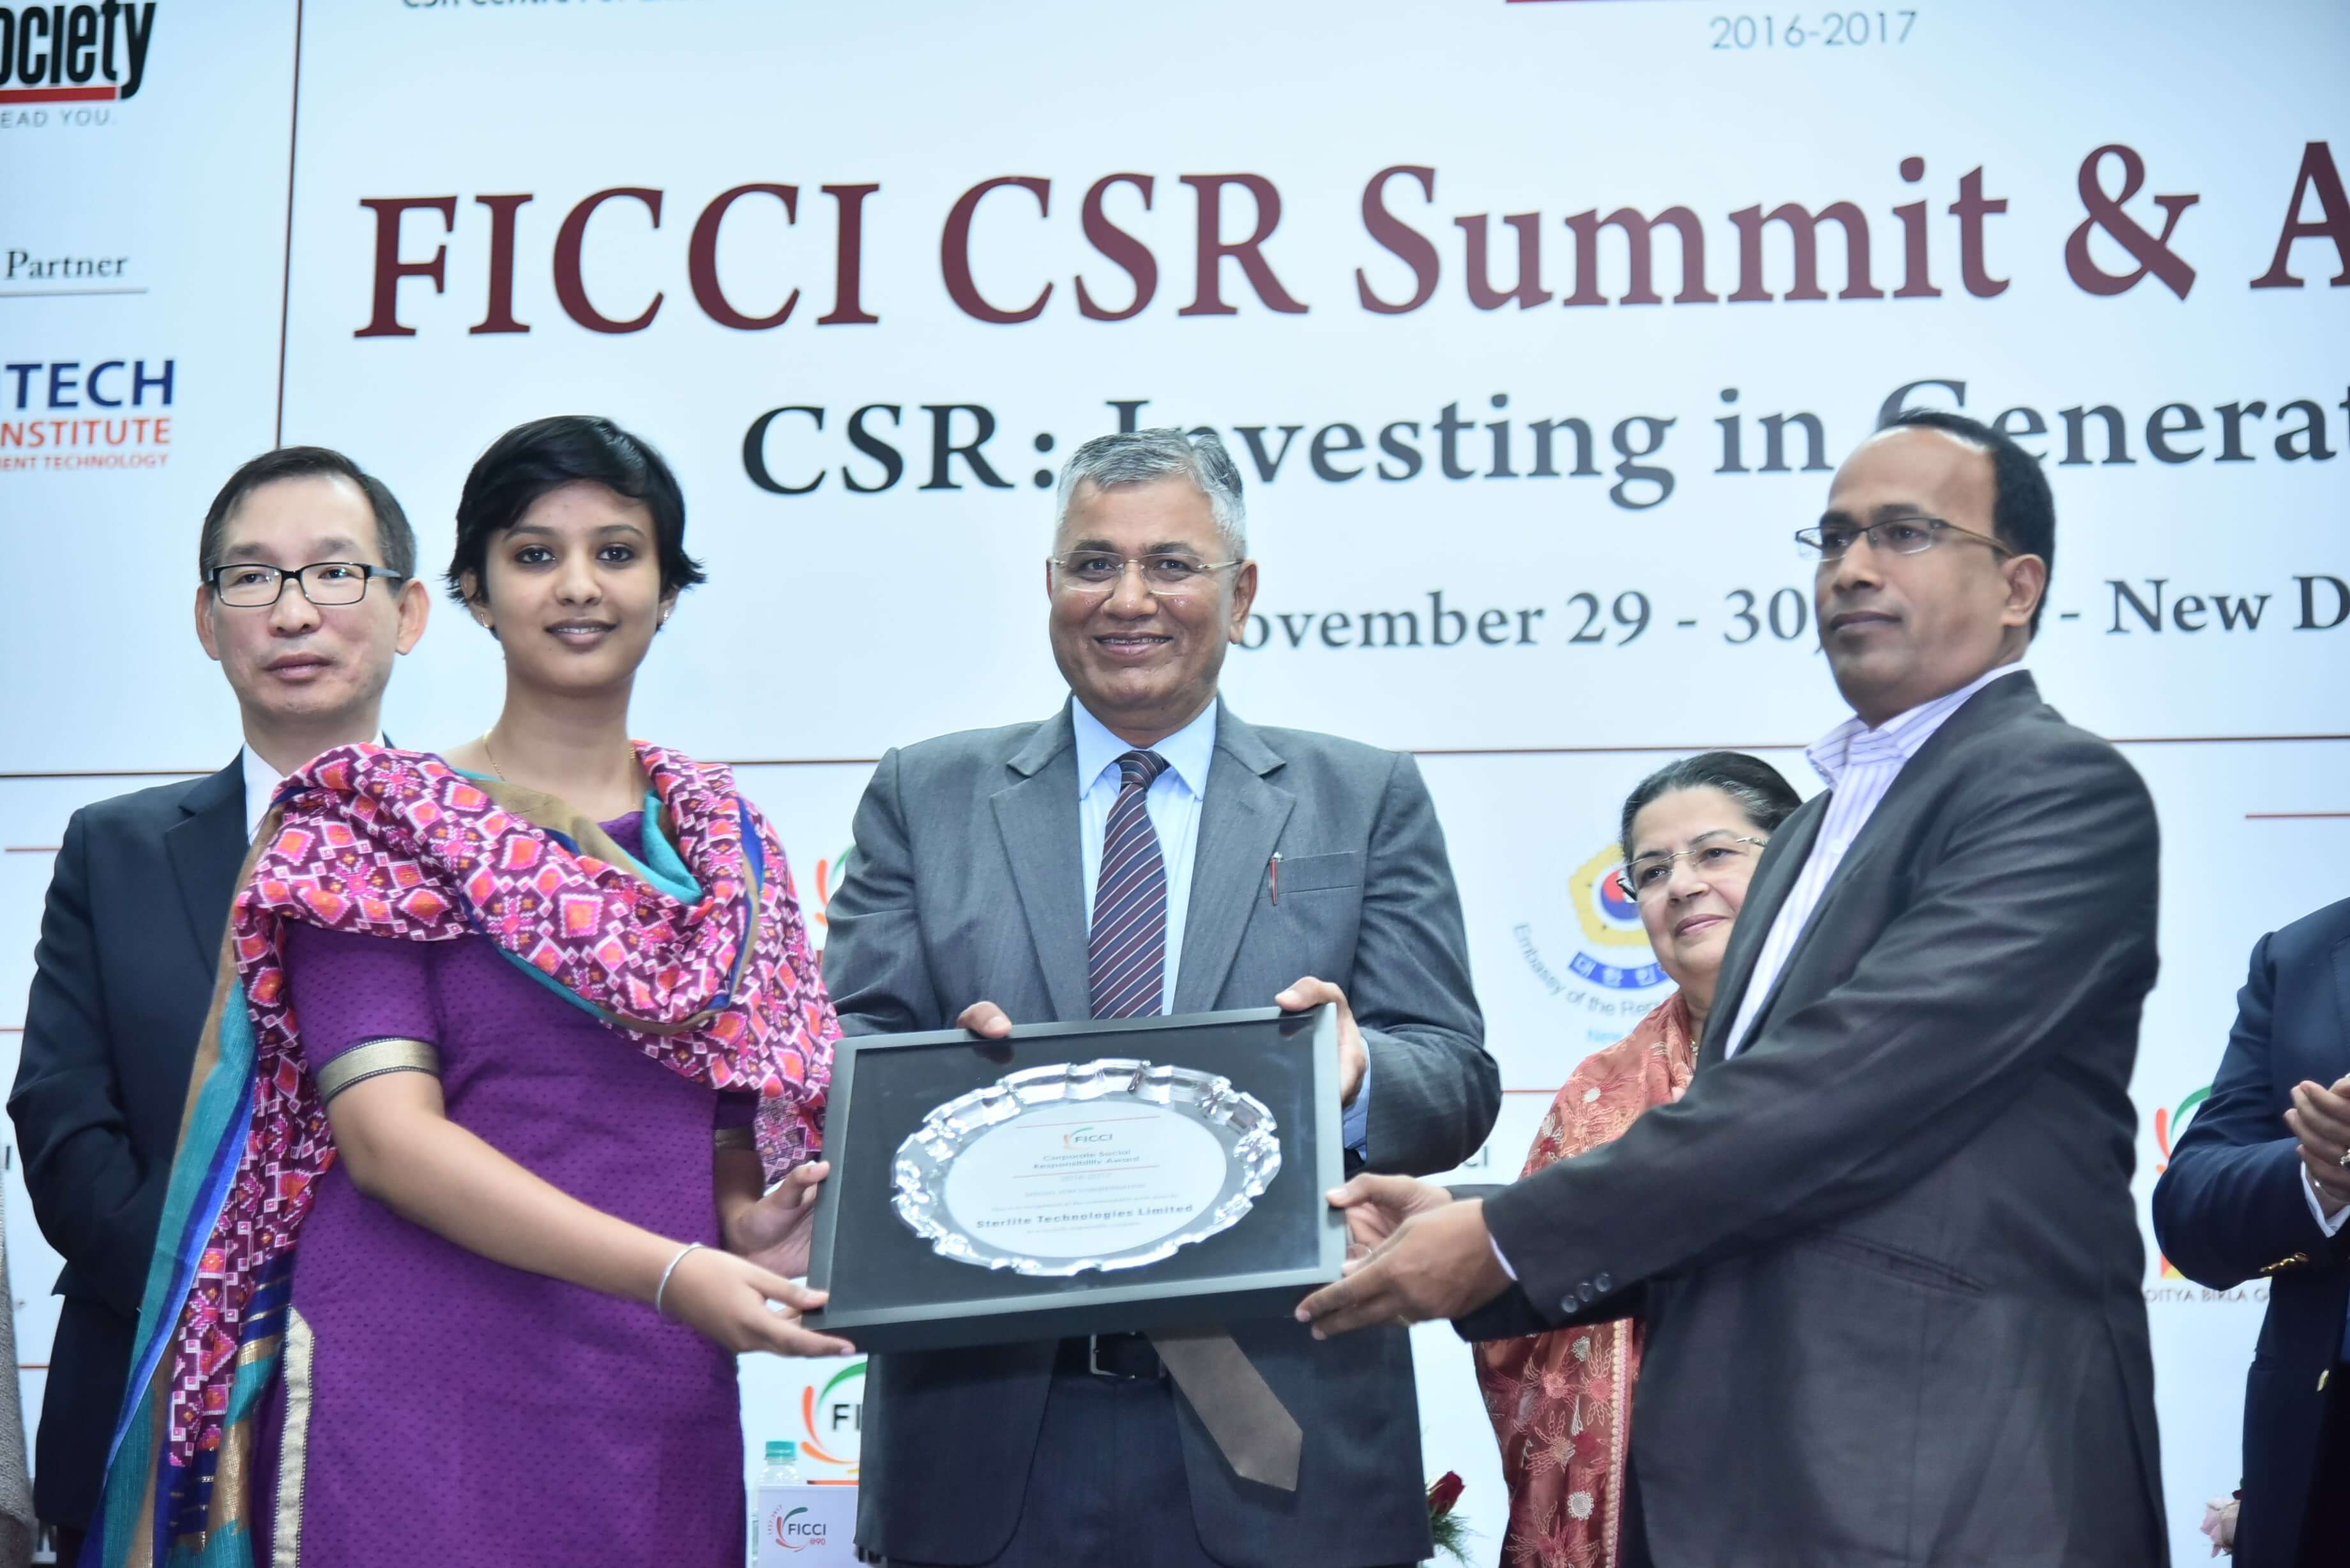 Sterlite Tech wins the Jury Commendation Award for CSR in water-management in Aurangabad